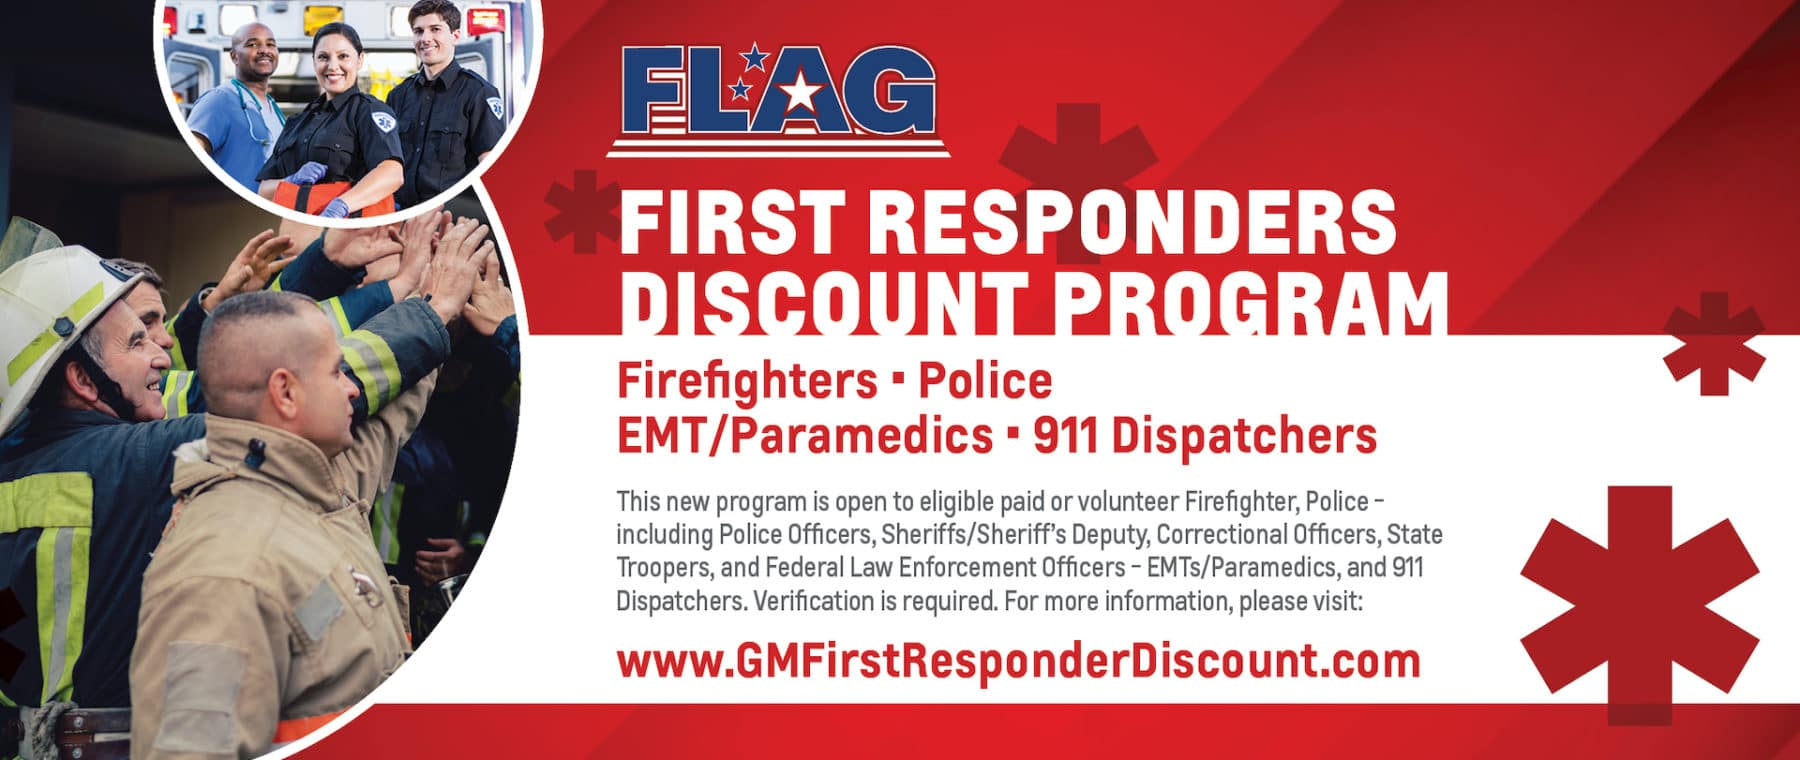 FLAG19_398_FirstResponders_1600x686